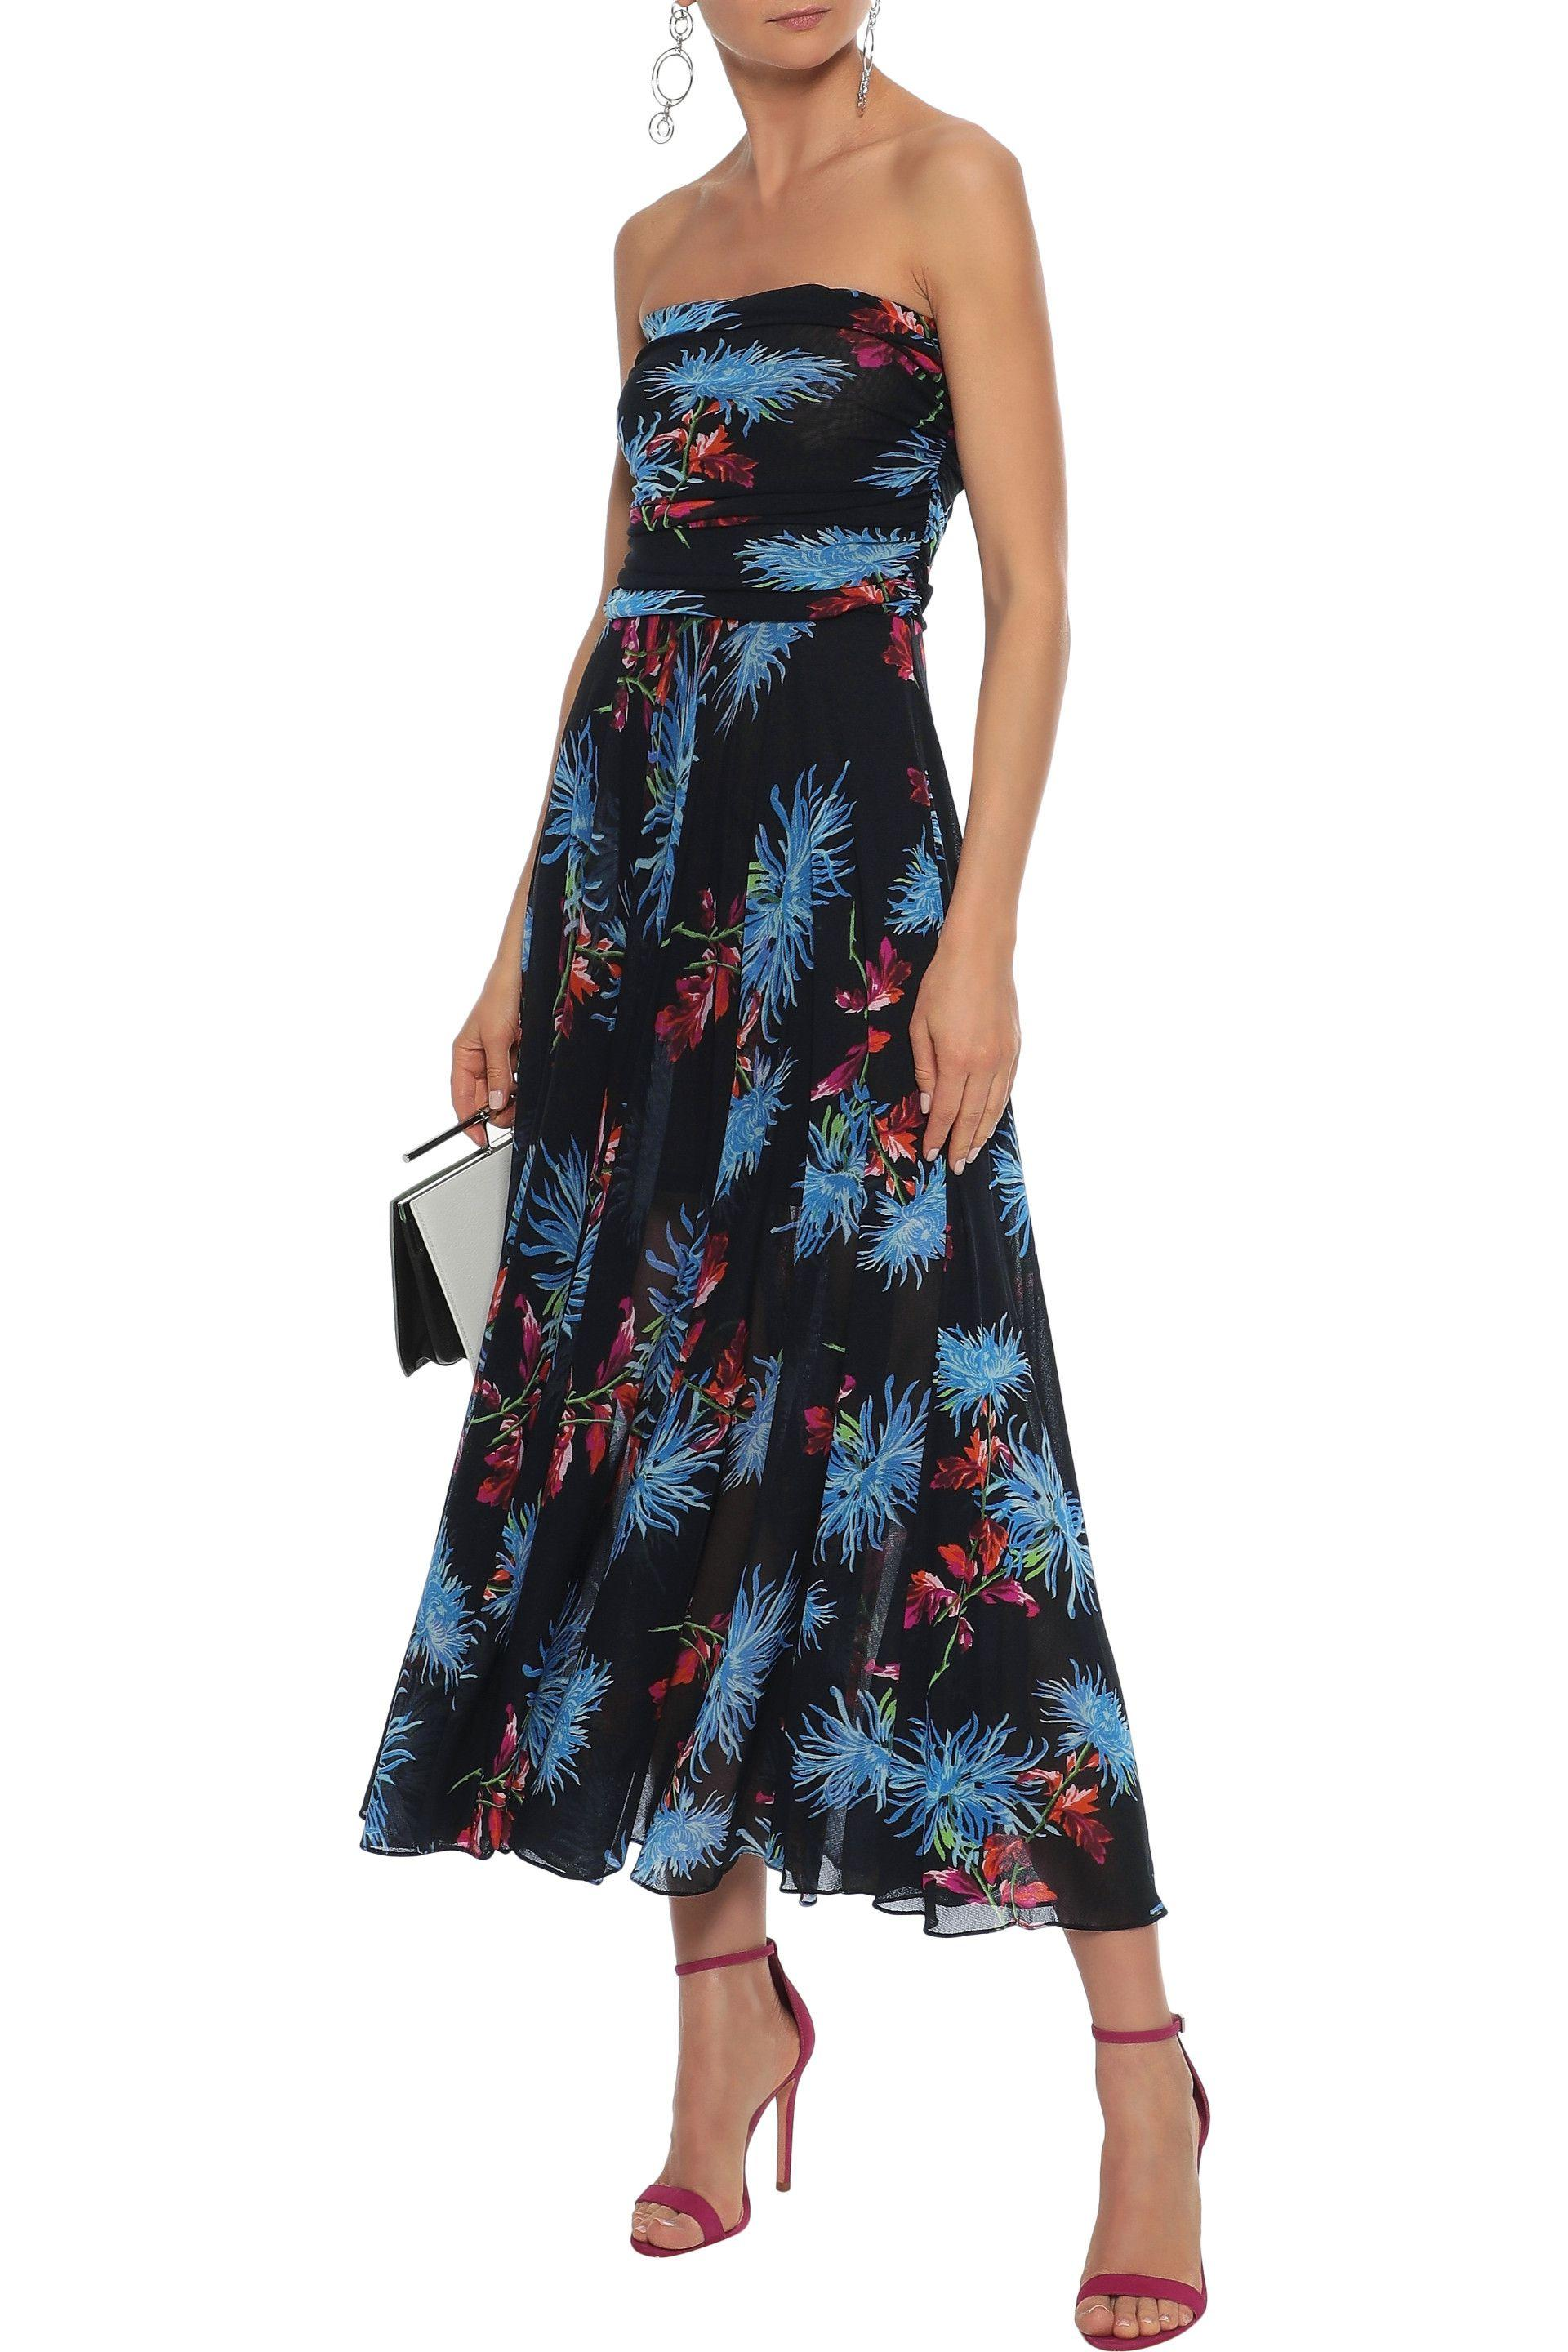 8dd0dafa8381 Diane von Furstenberg - Woman Strapless Pleated Floral-print Stretch-mesh  Midi Dress Black. View fullscreen